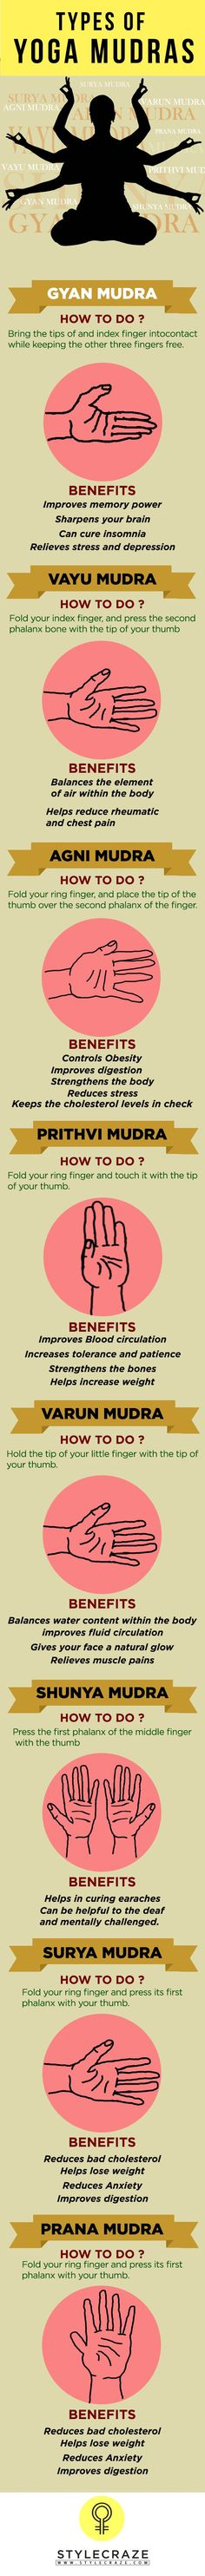 Yoga mudras are not only part of an exercise but a form of spiritual practice to…